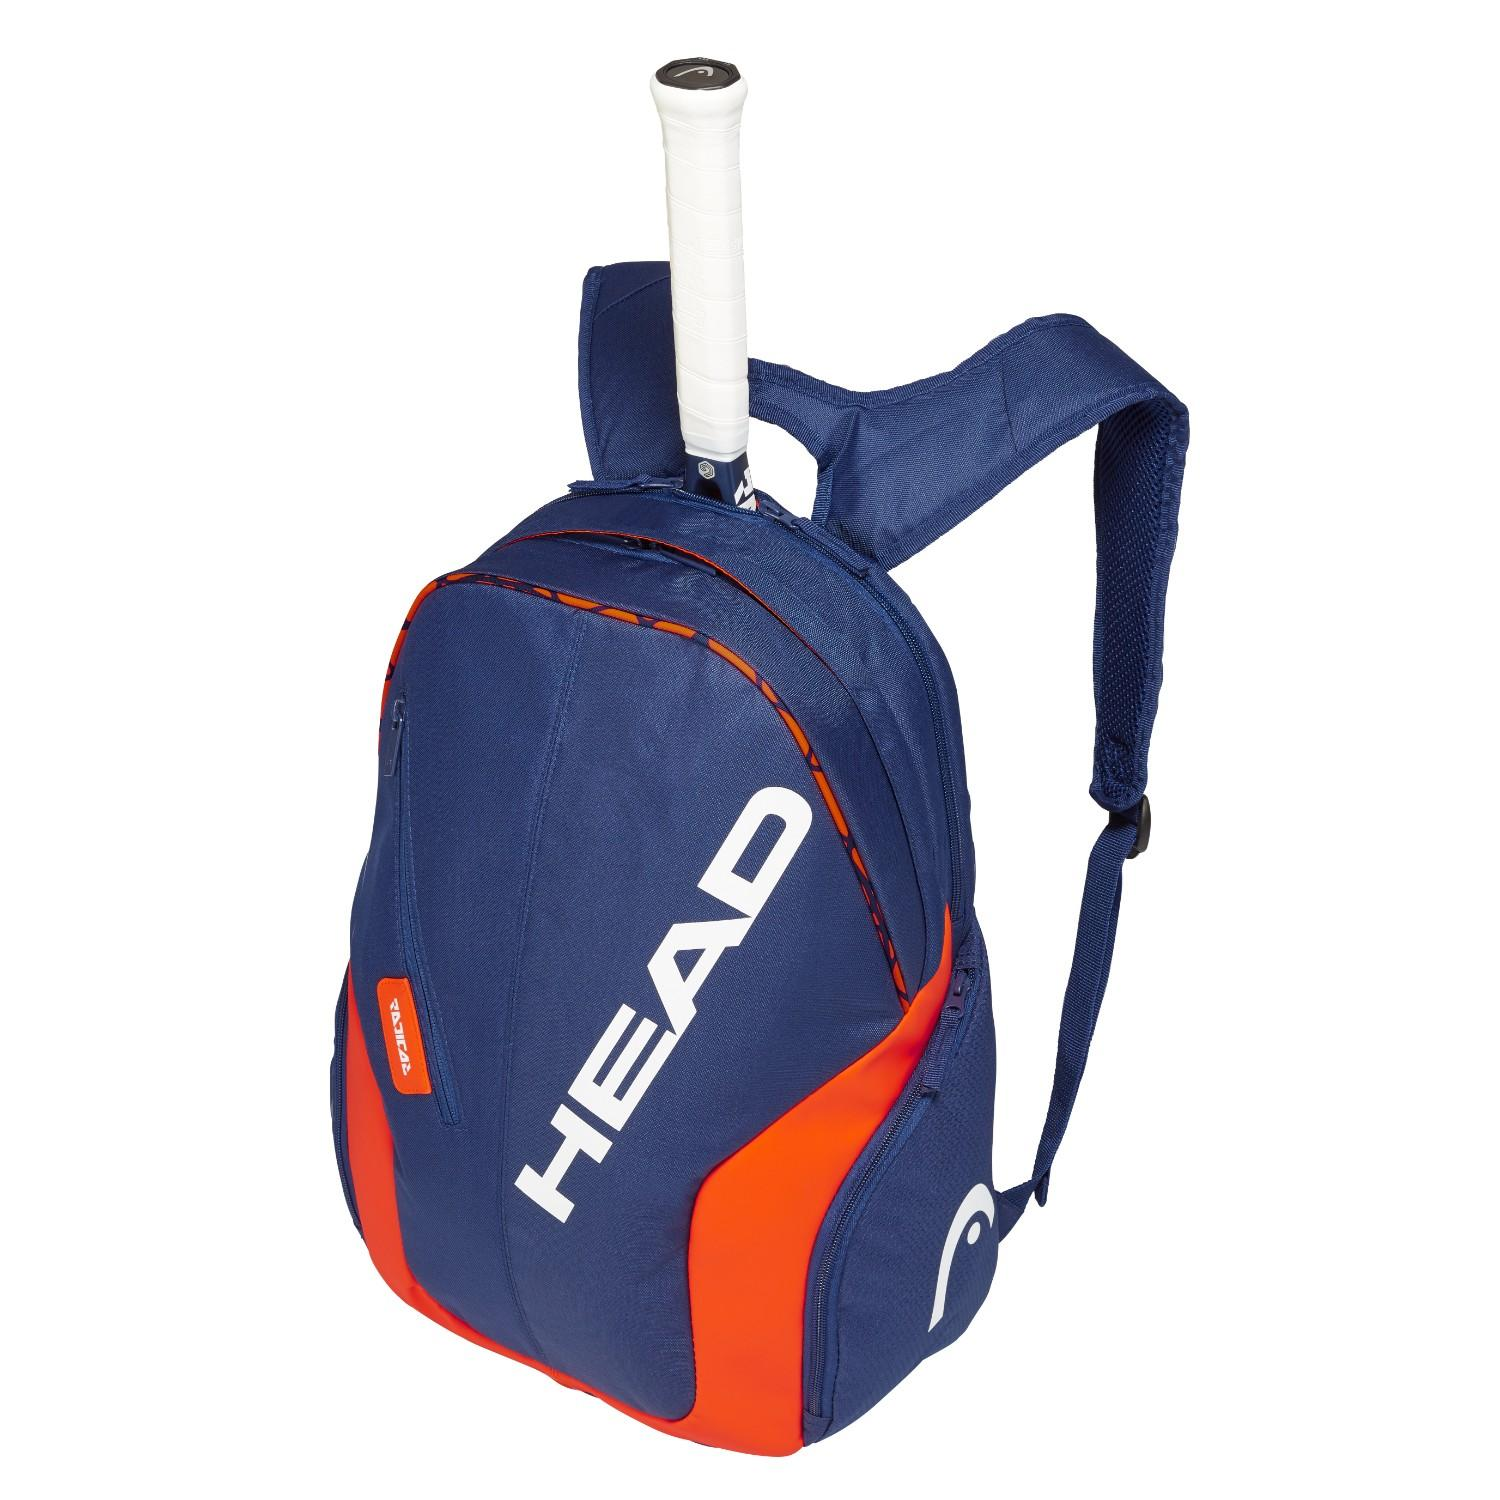 Head Radical Tennis Backpack By Head.